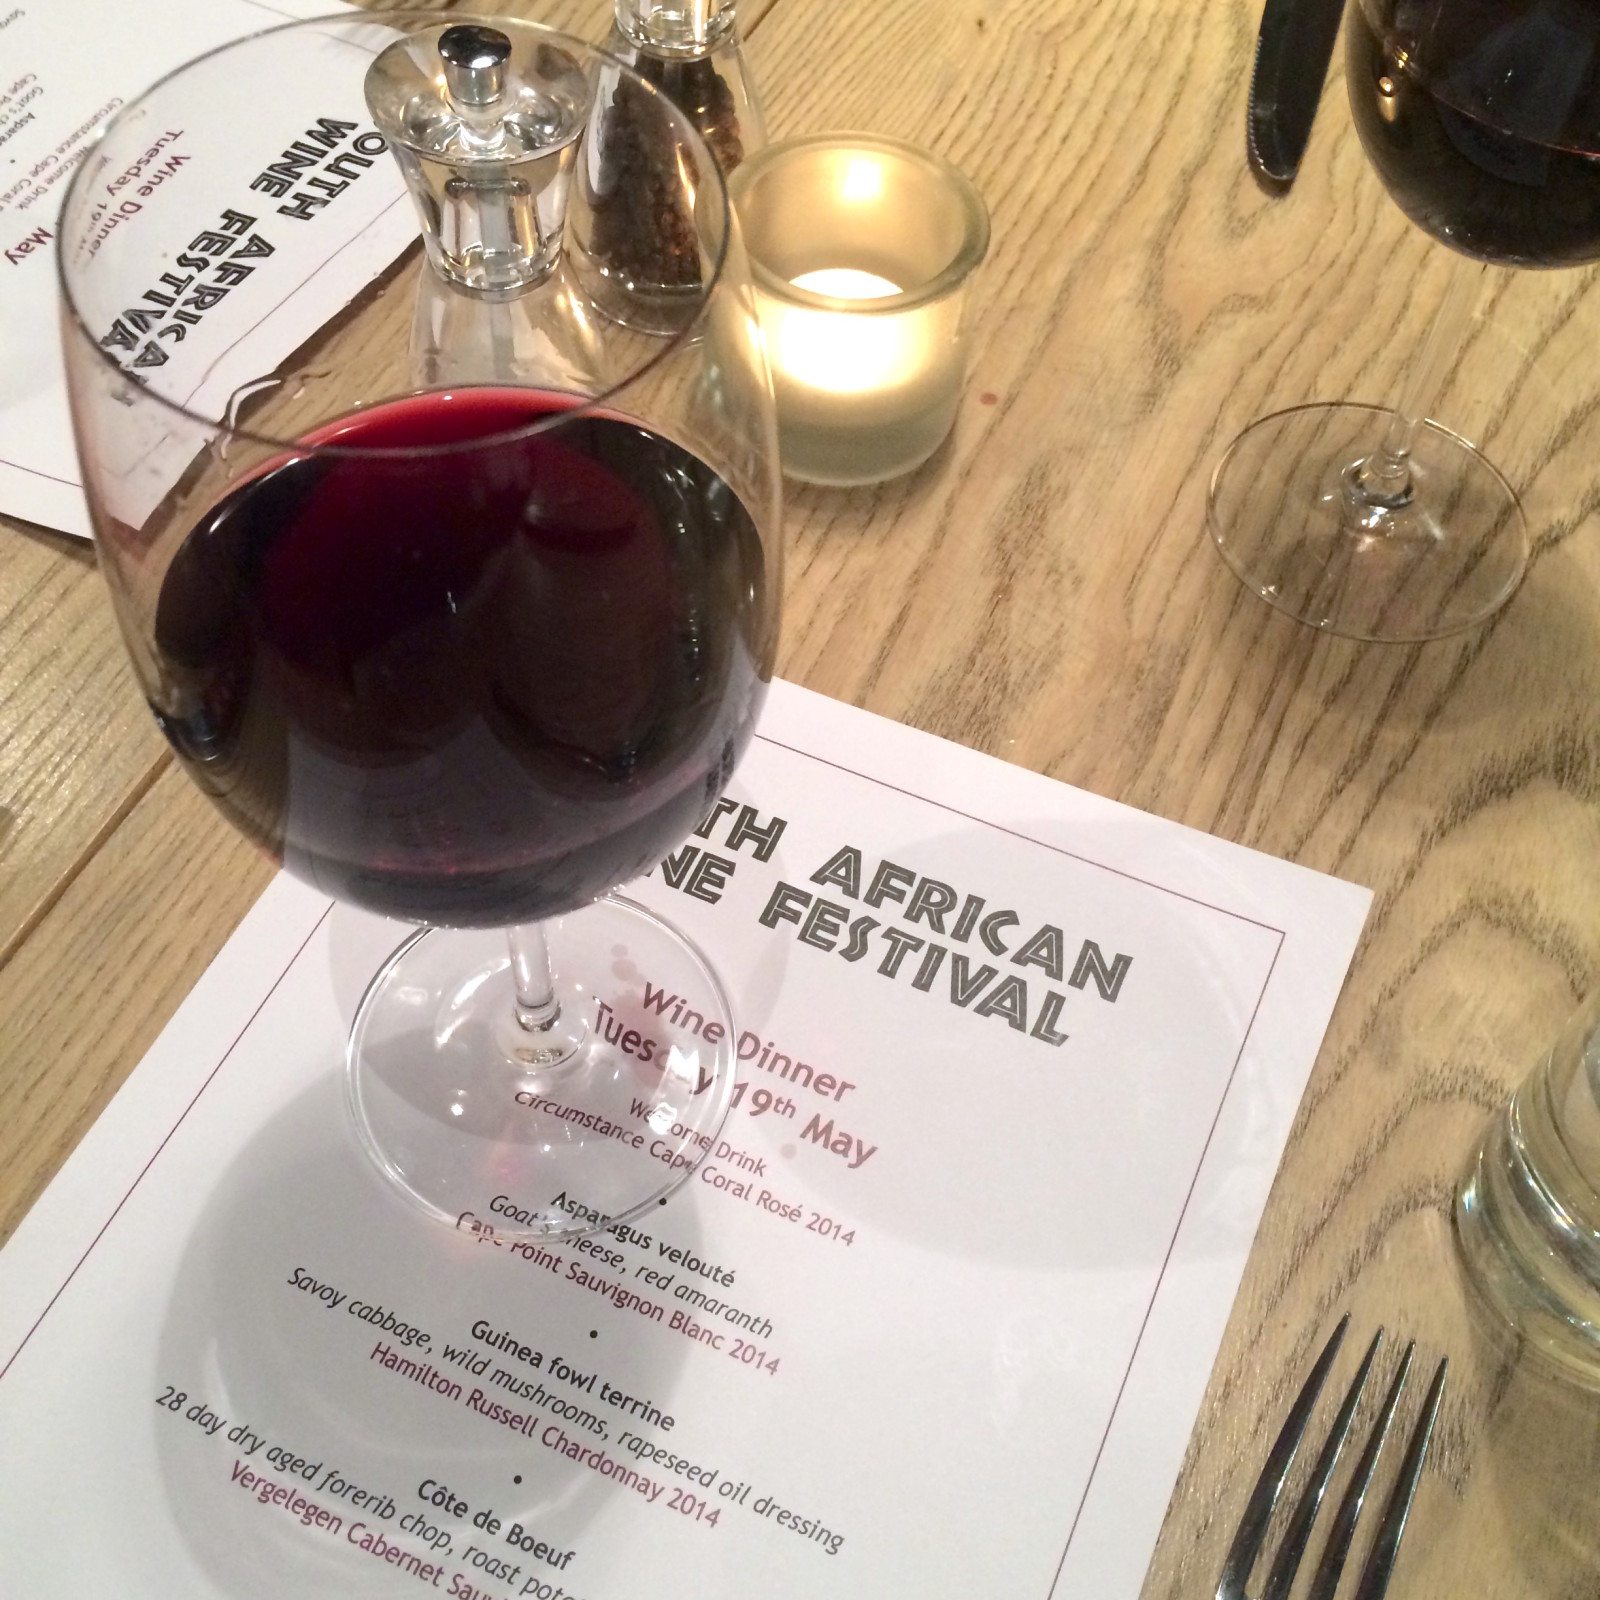 South African Wine Festival at Vivat Bacchus